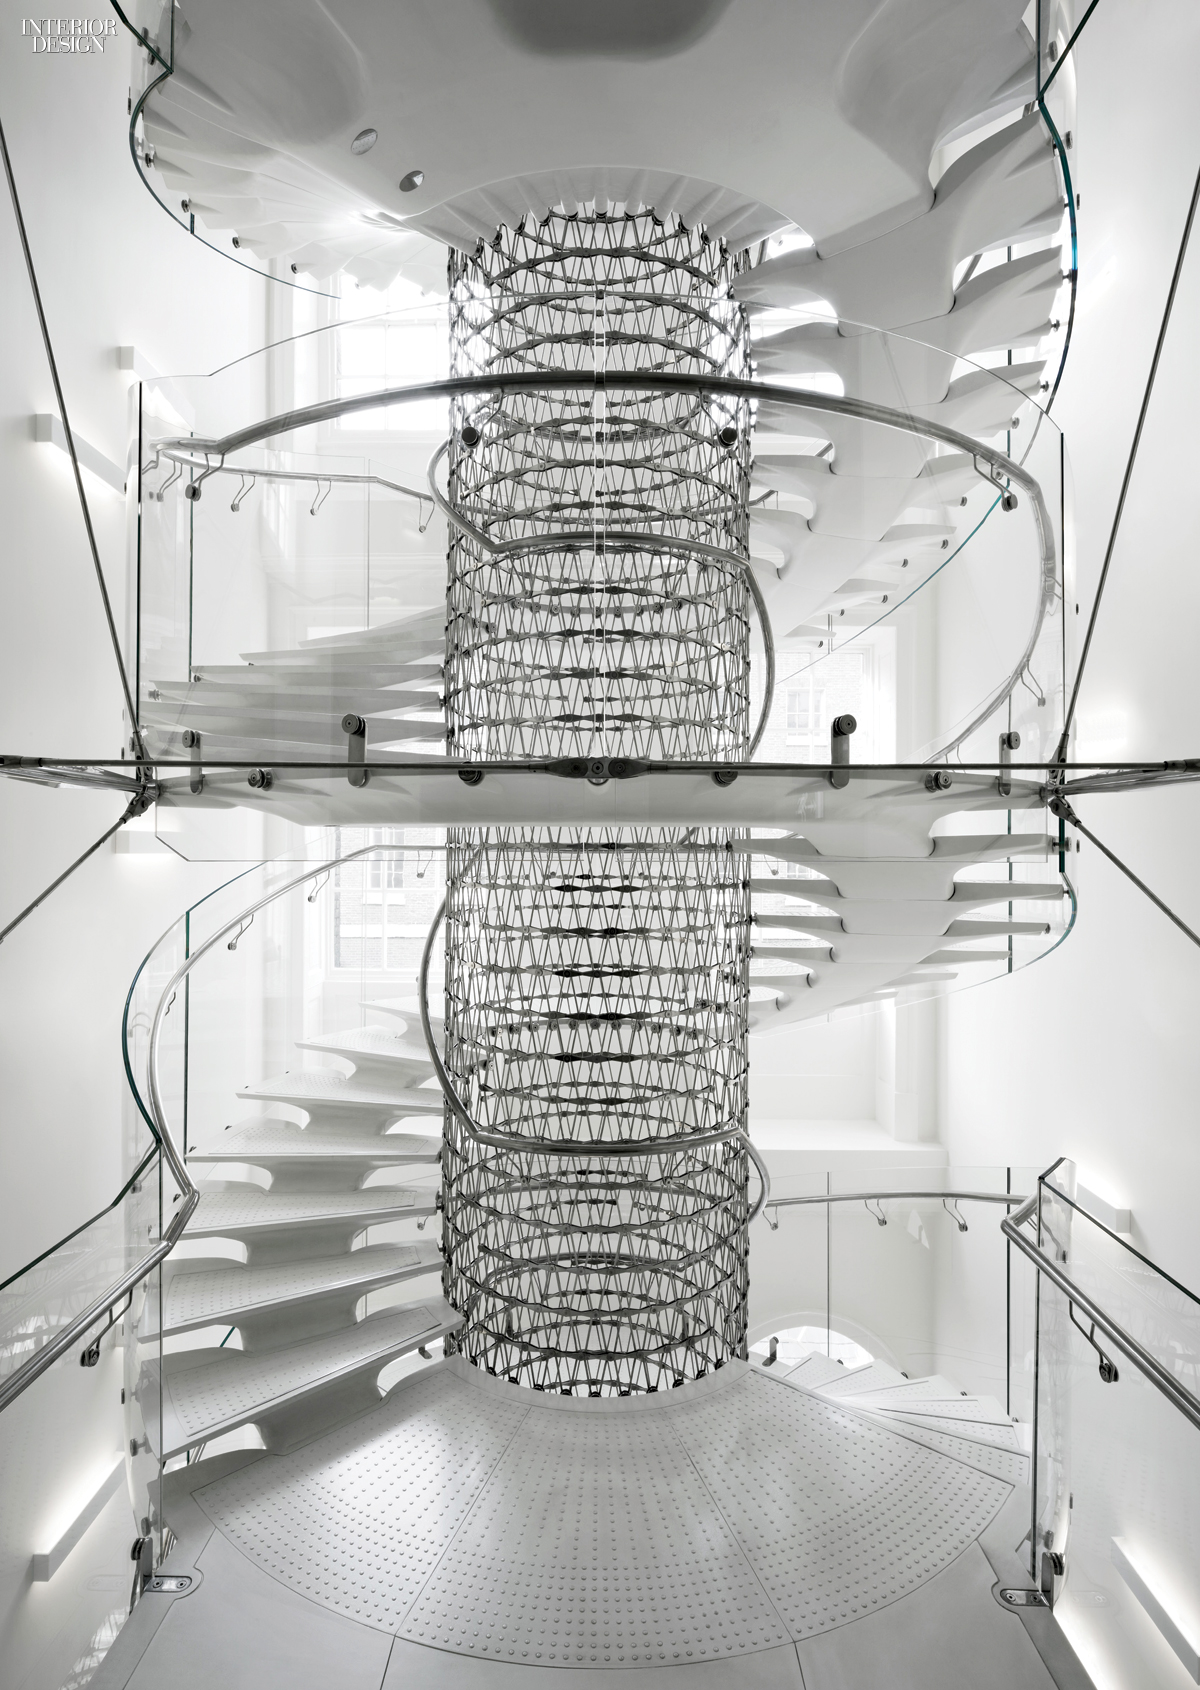 Eva jiricna 39 s uhpc stairs for london 39 s somerset house for Spiral staircase house